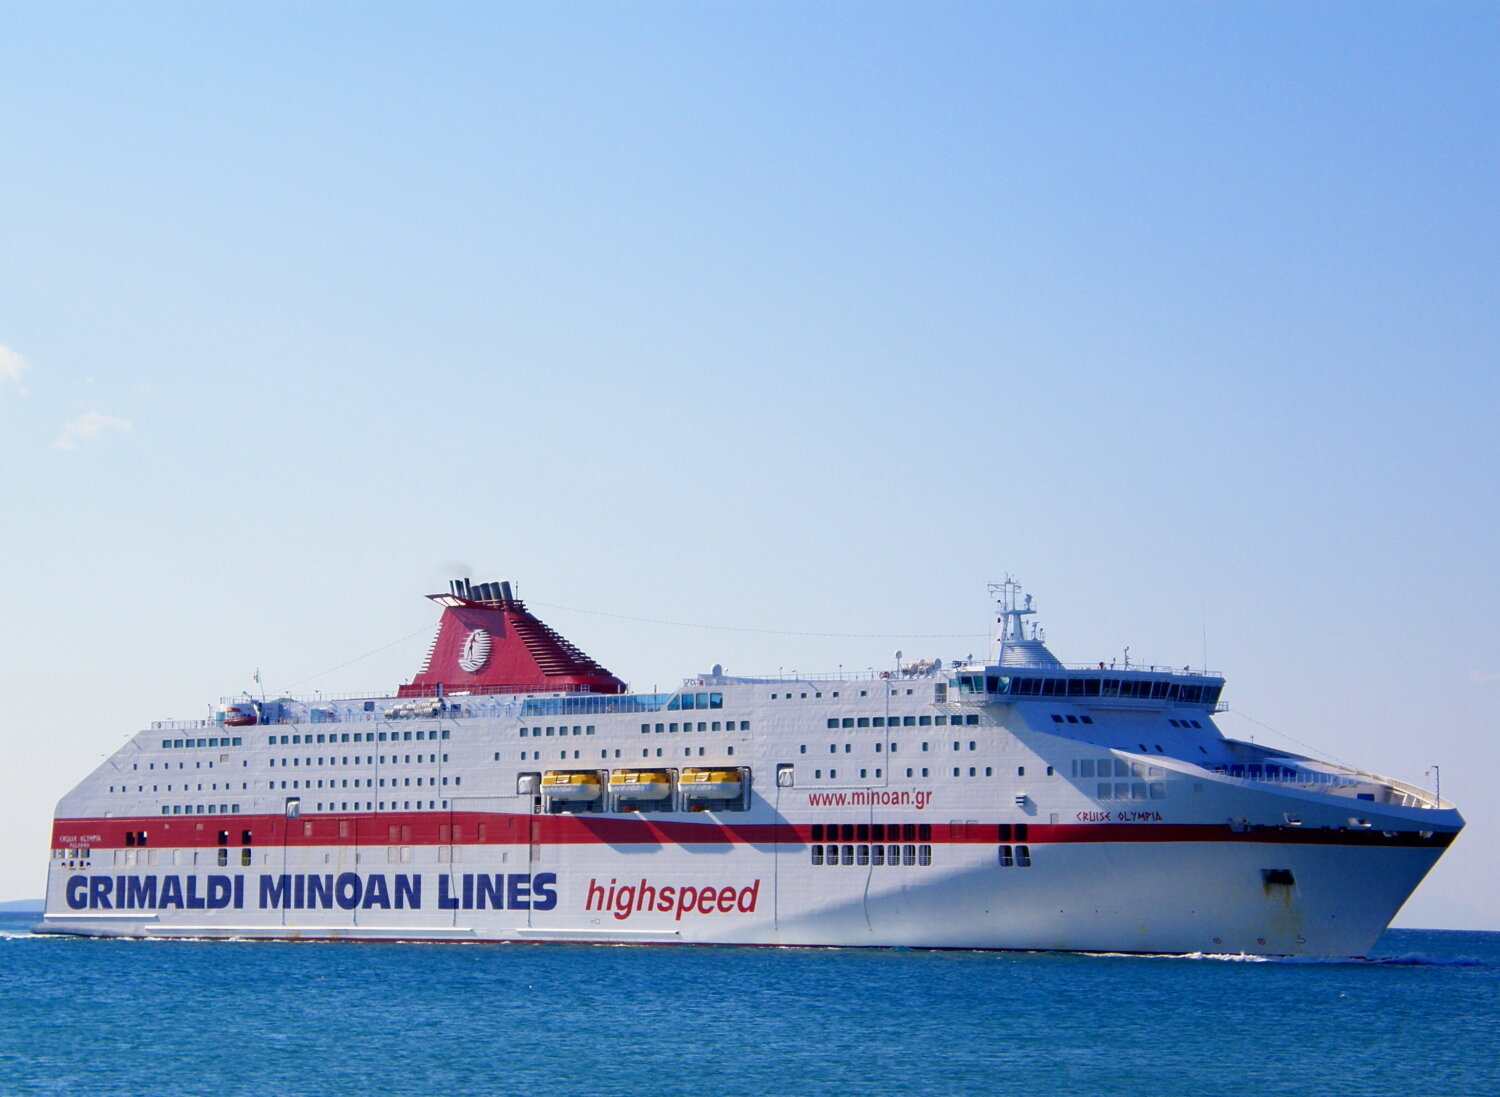 cruise olympia arrival at patra 061120 c